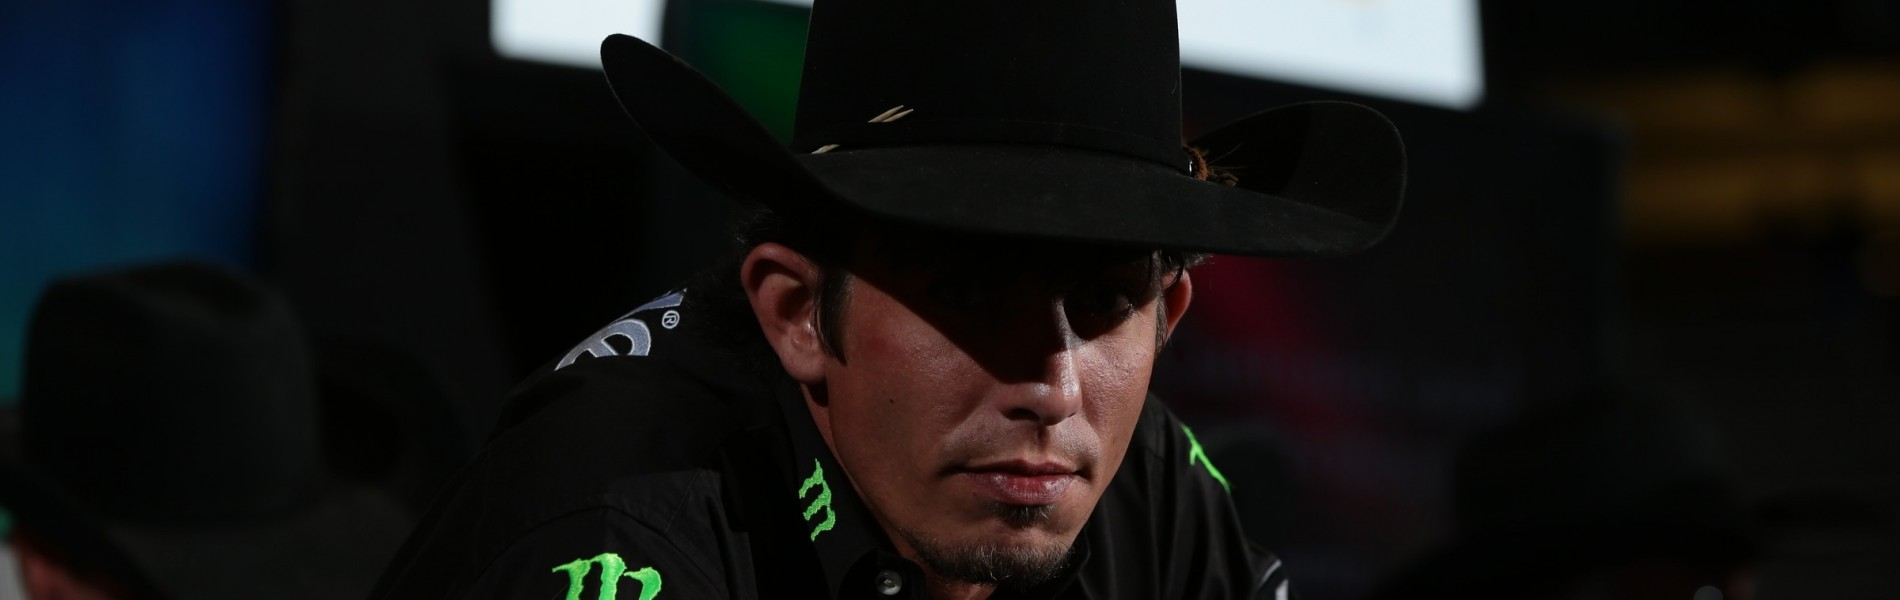 JB Mauney during the first round of the Albuquerque Built Ford Tough Series PBR